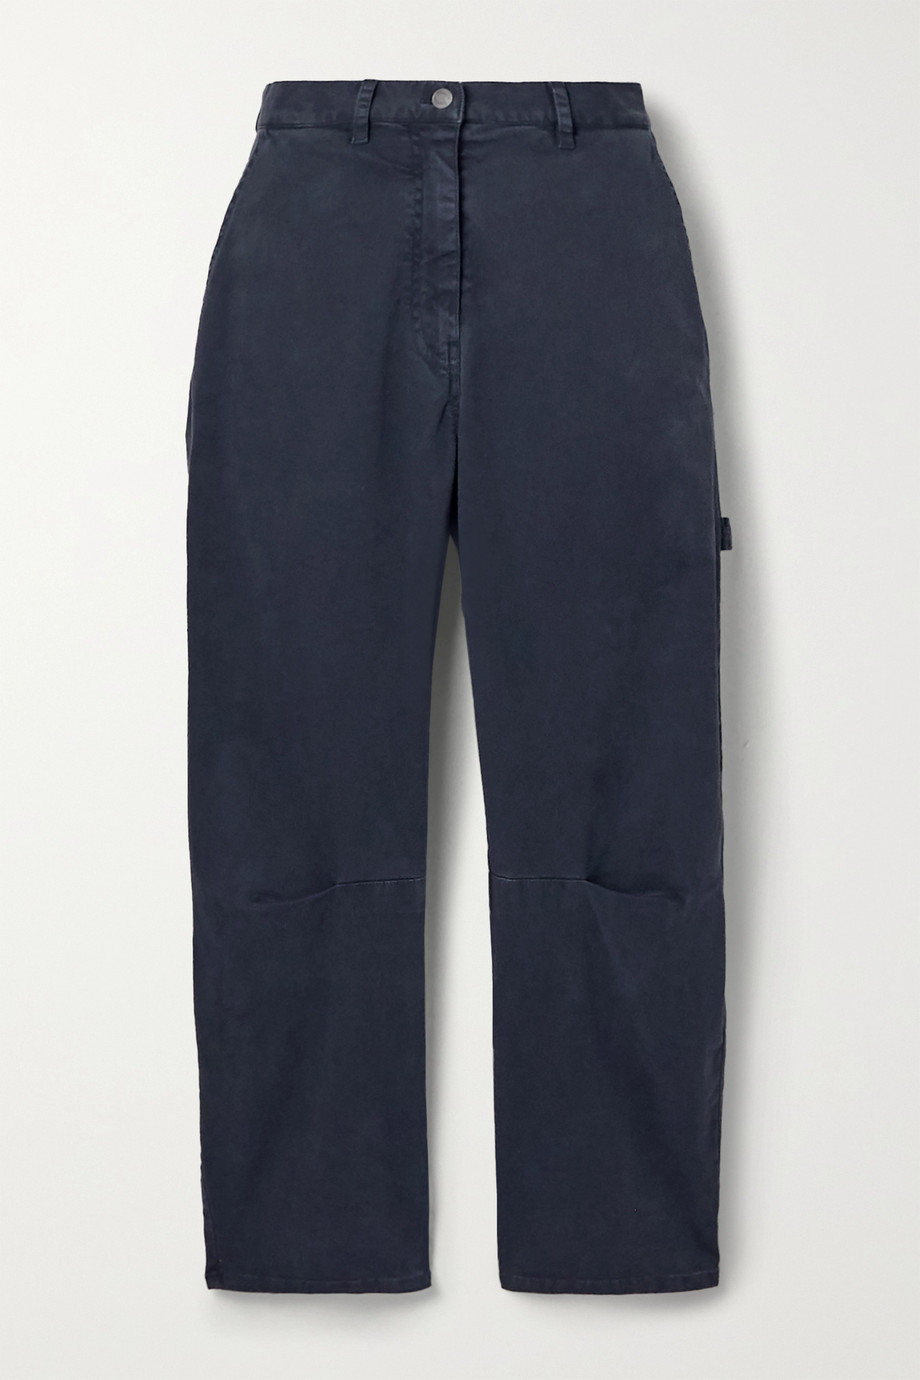 Nili Lotan Carpenter cotton-blend twill tapered pants